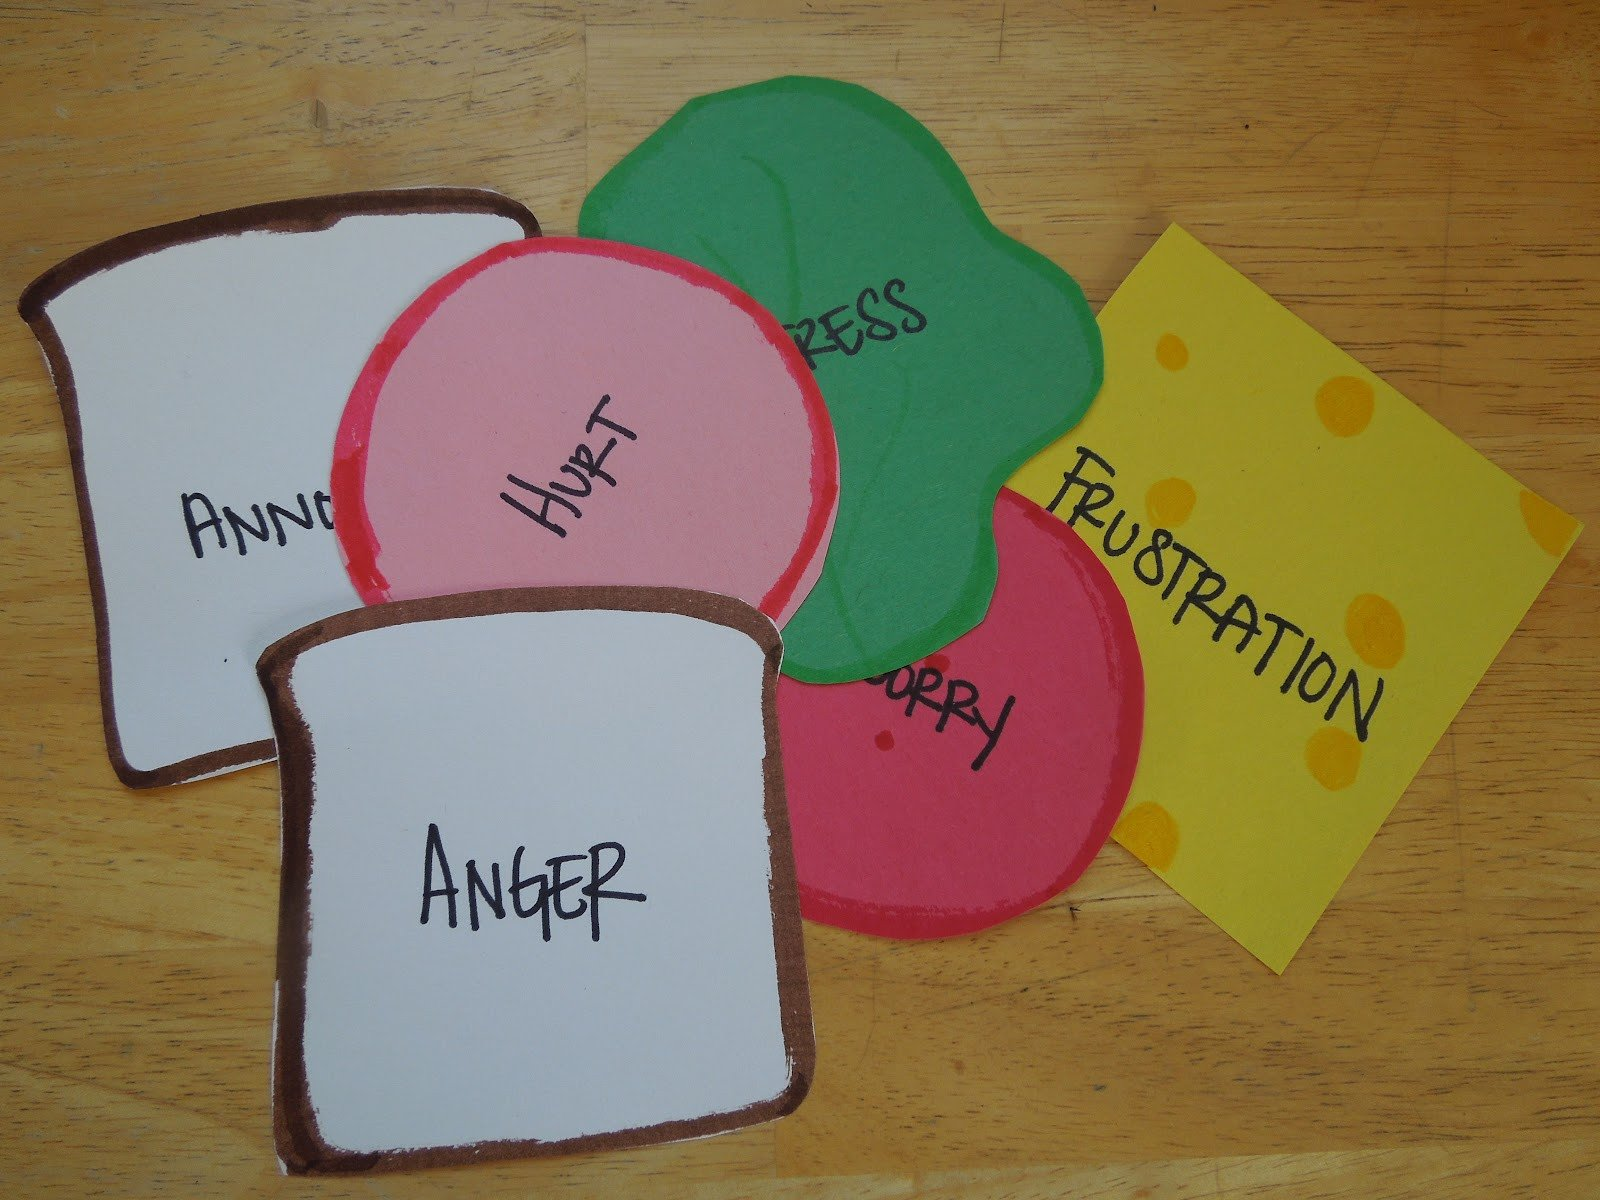 Calm Down Sandwich Template Behavioral Interventions for Kids Anger Sandwiches